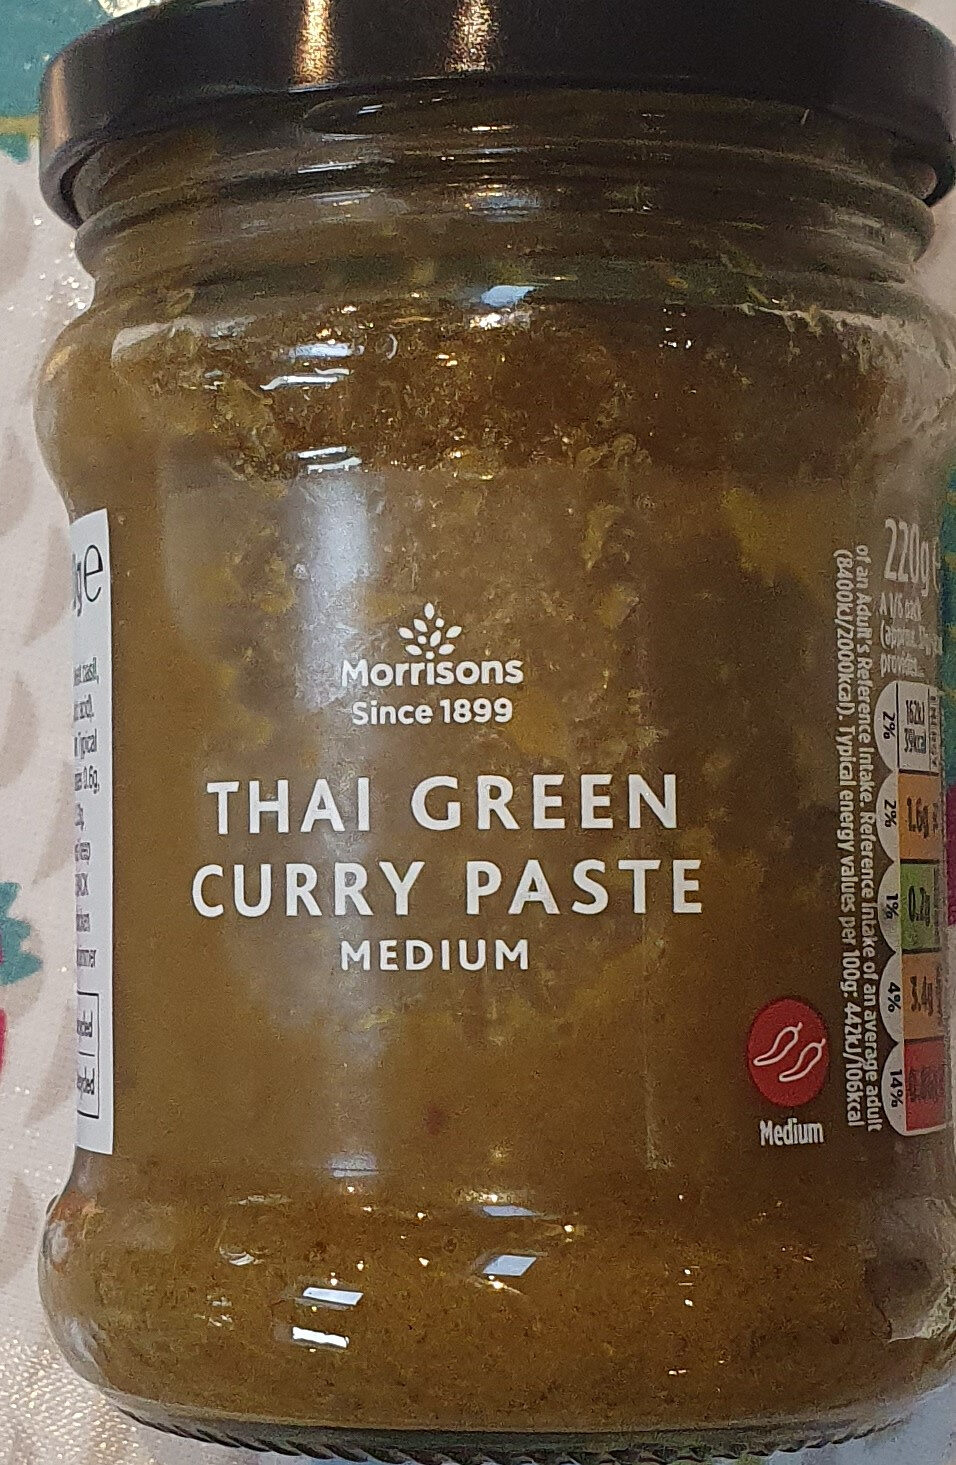 Thai green curry paste - Product - en